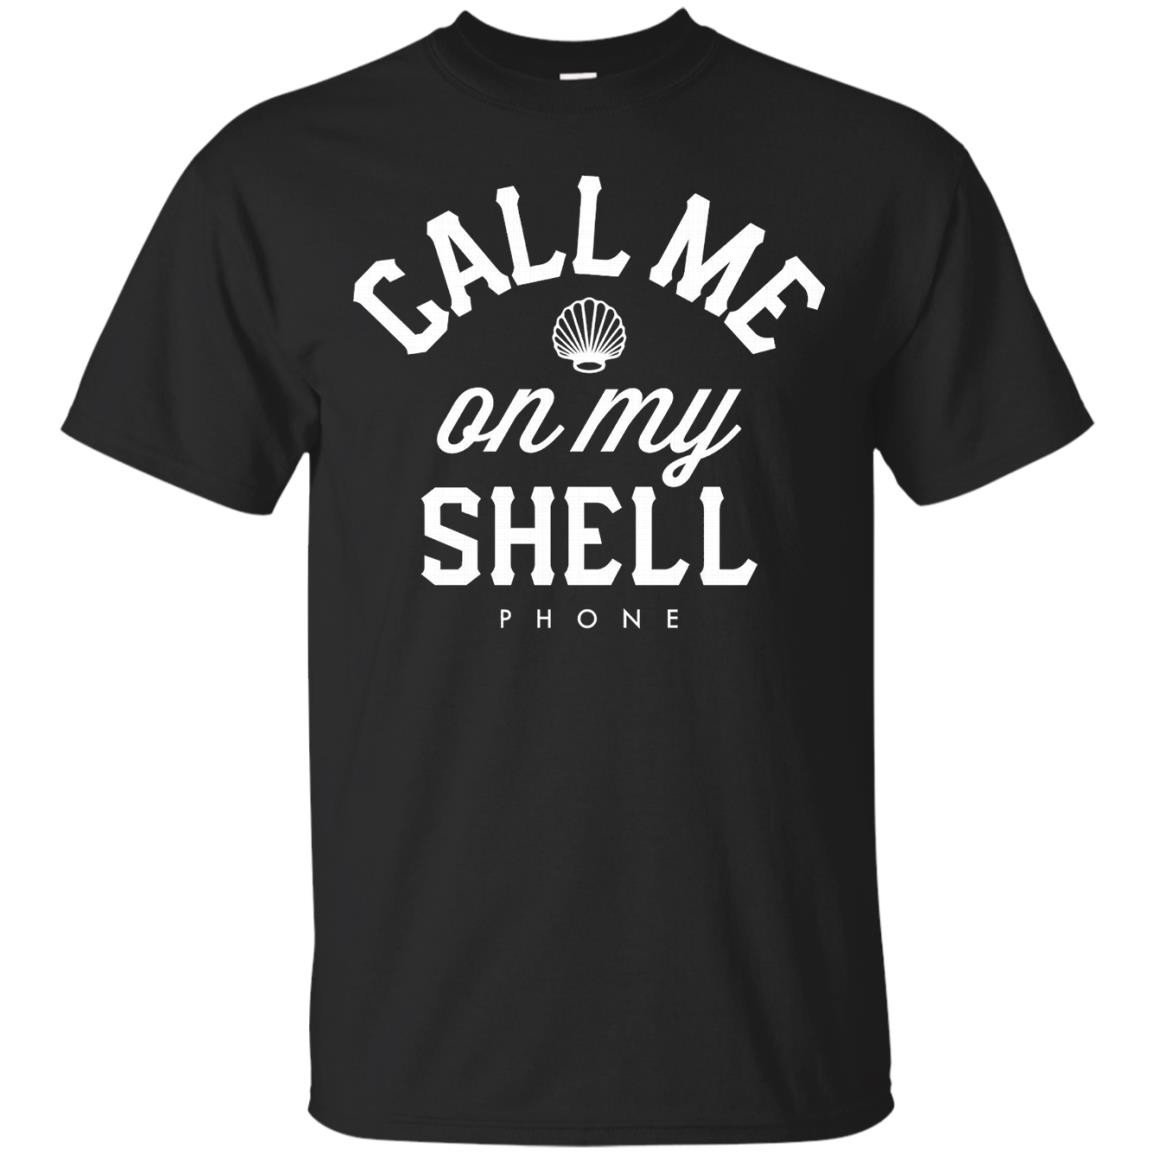 Call Me On My Shell Phone Tee – T-Shirt